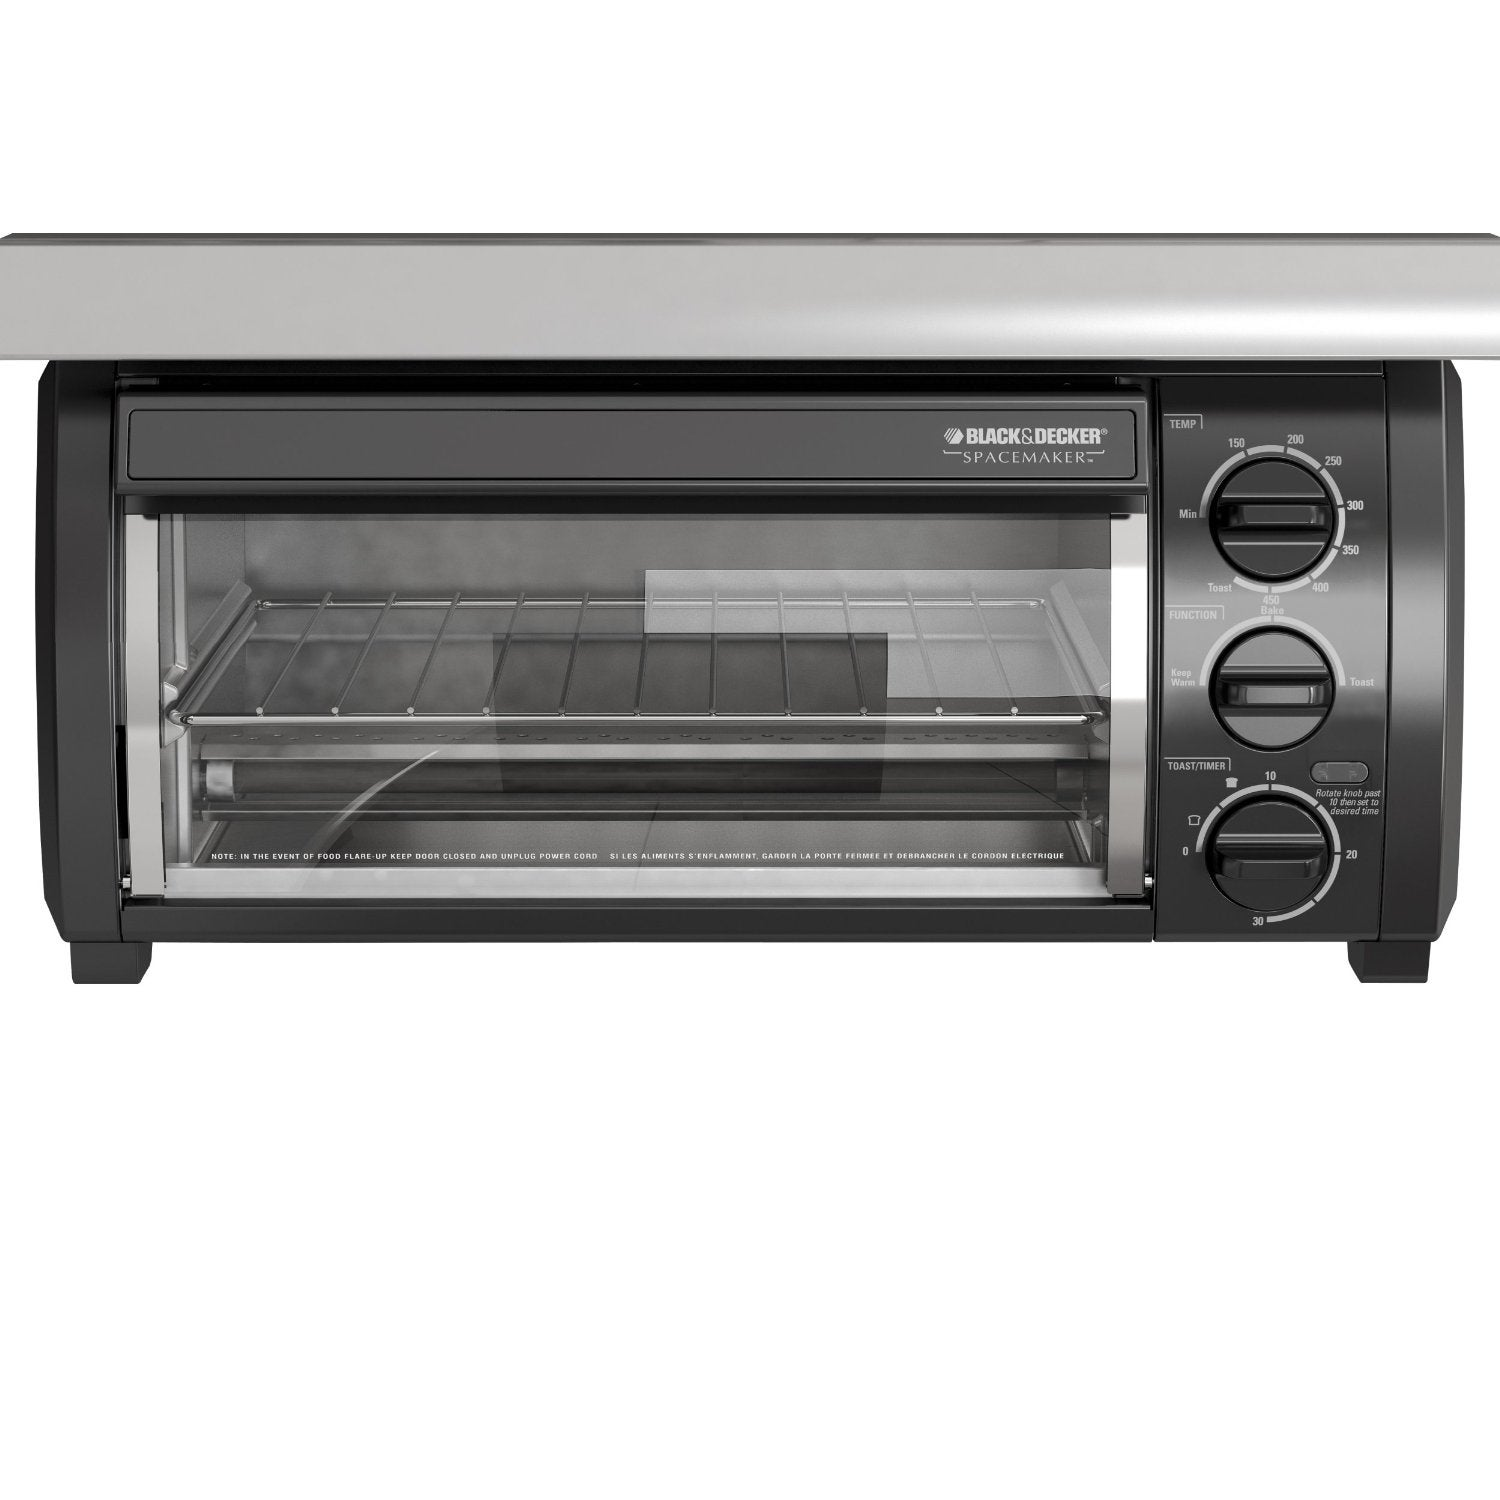 Black & Decker TROS1500 SpaceMaker Traditional Toaster